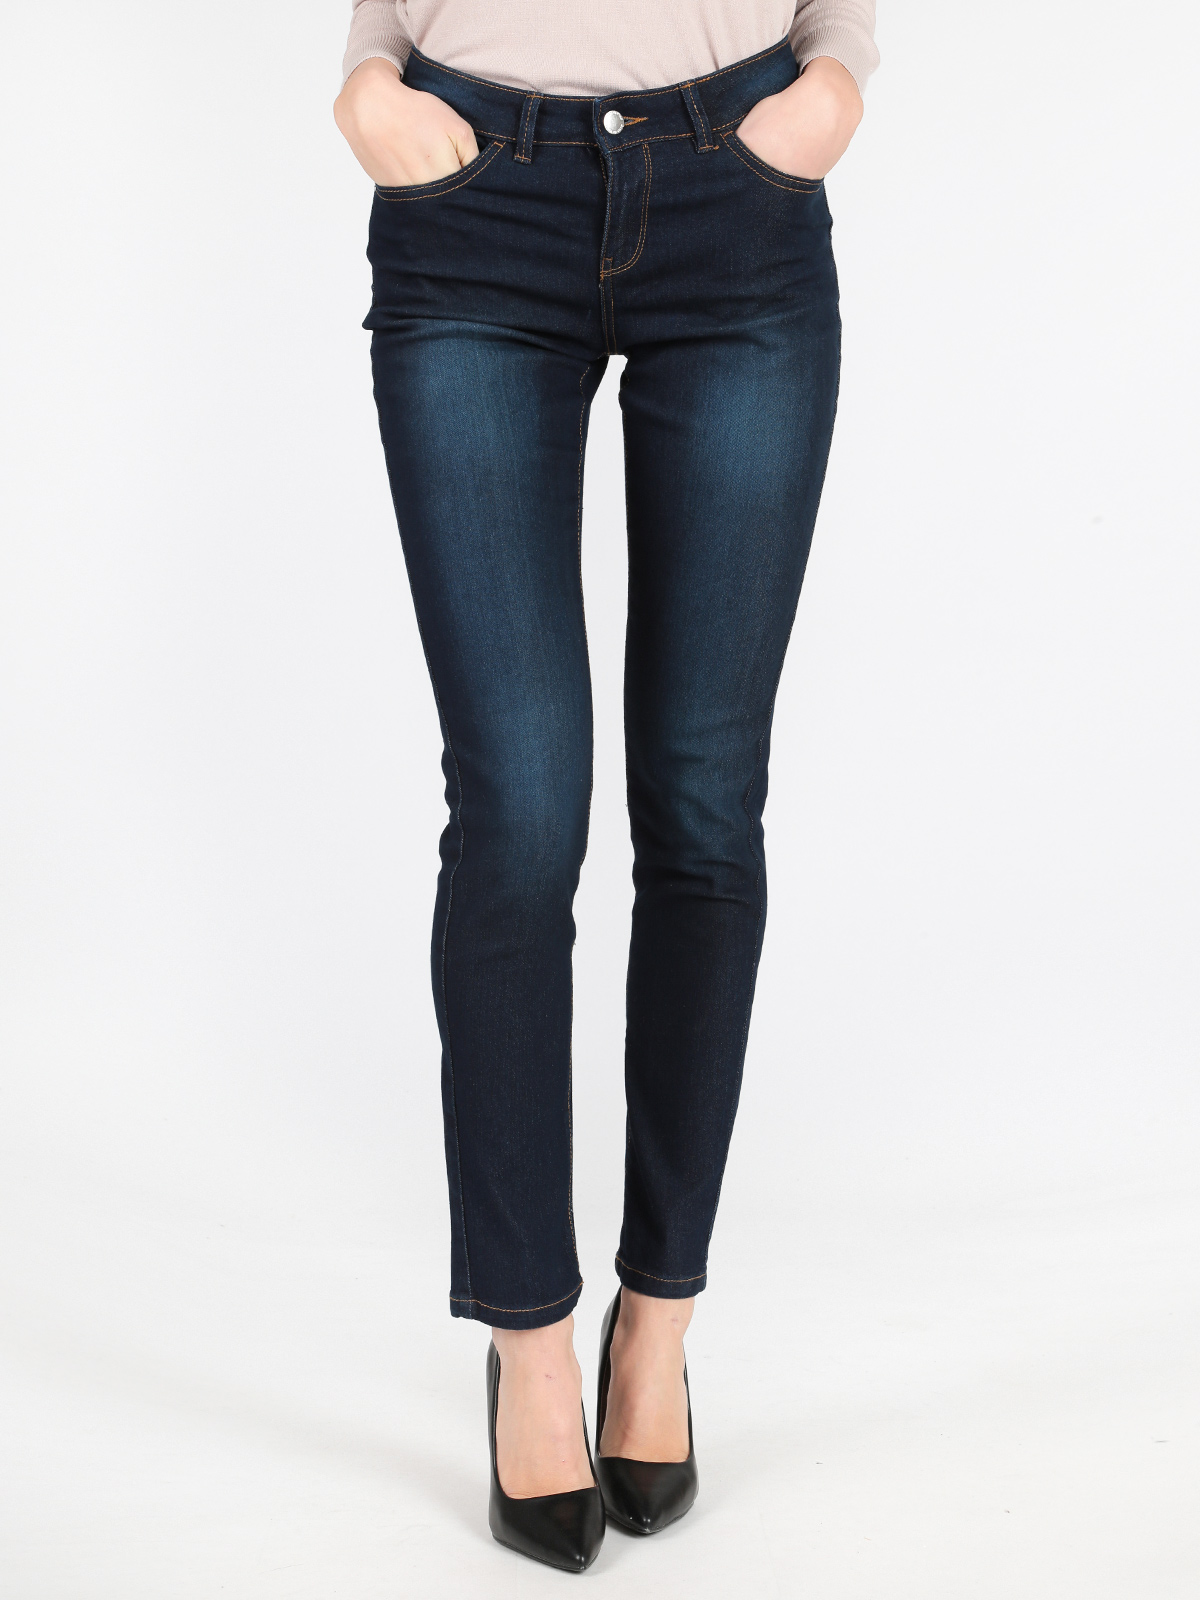 Jeans Woman Elastic Slim Pencil Spring Jenas